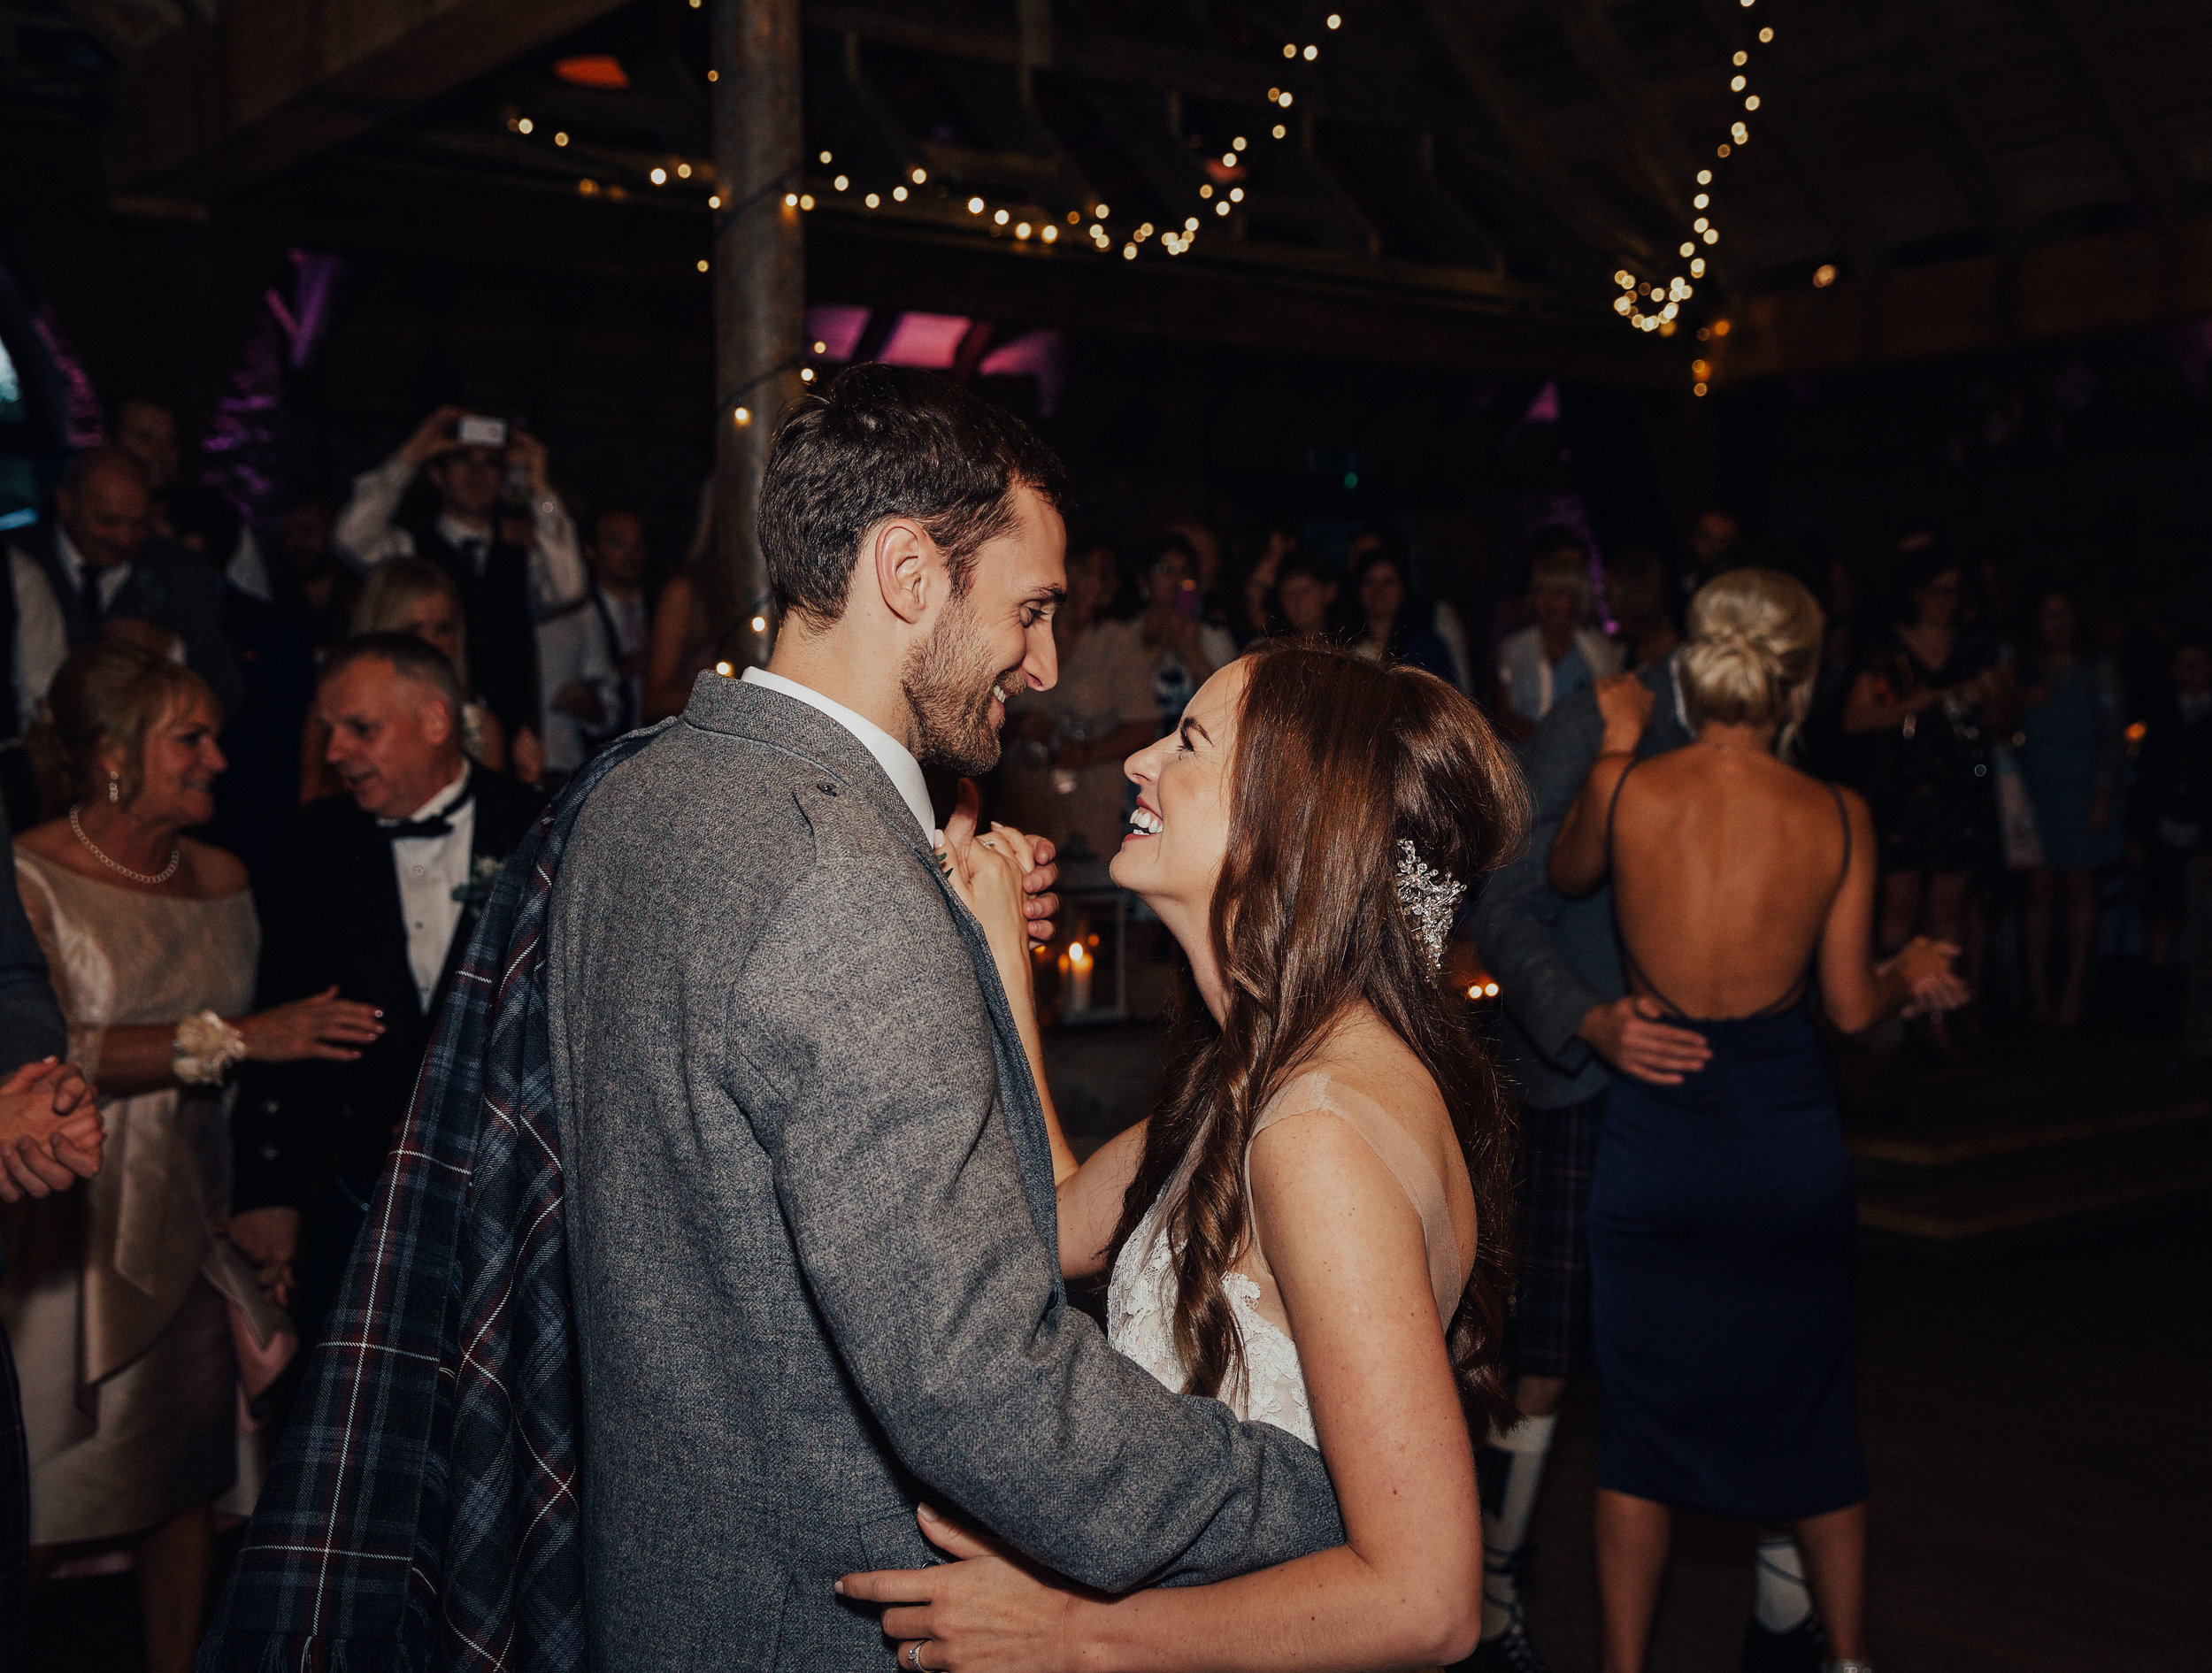 BYRE_AT_INCHYRA_WEDDING_PHOTOGRAPHER_PJ_PHILLIPS_PHOTOGRAPHY_KAYLEIGH_ANDREW_160.jpg